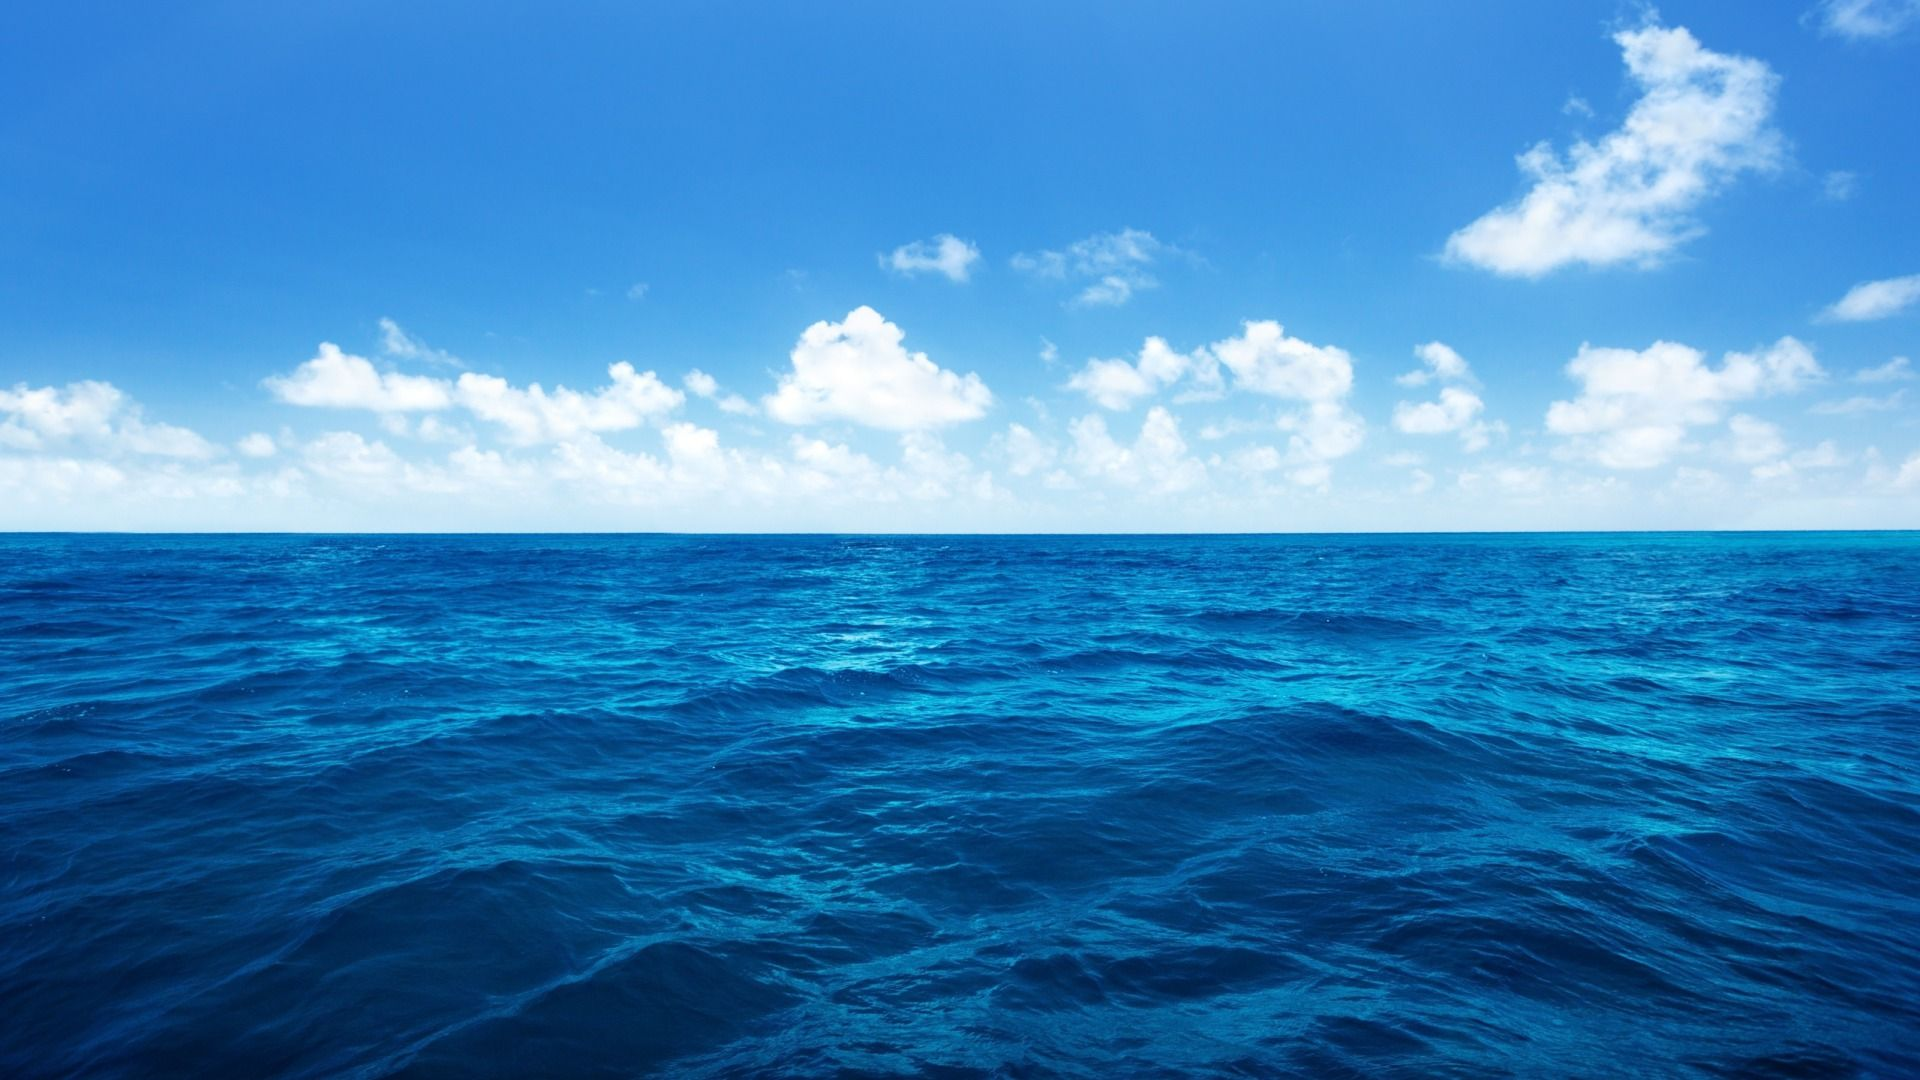 Blue Ocean Wallpapers Top Free Blue Ocean Backgrounds